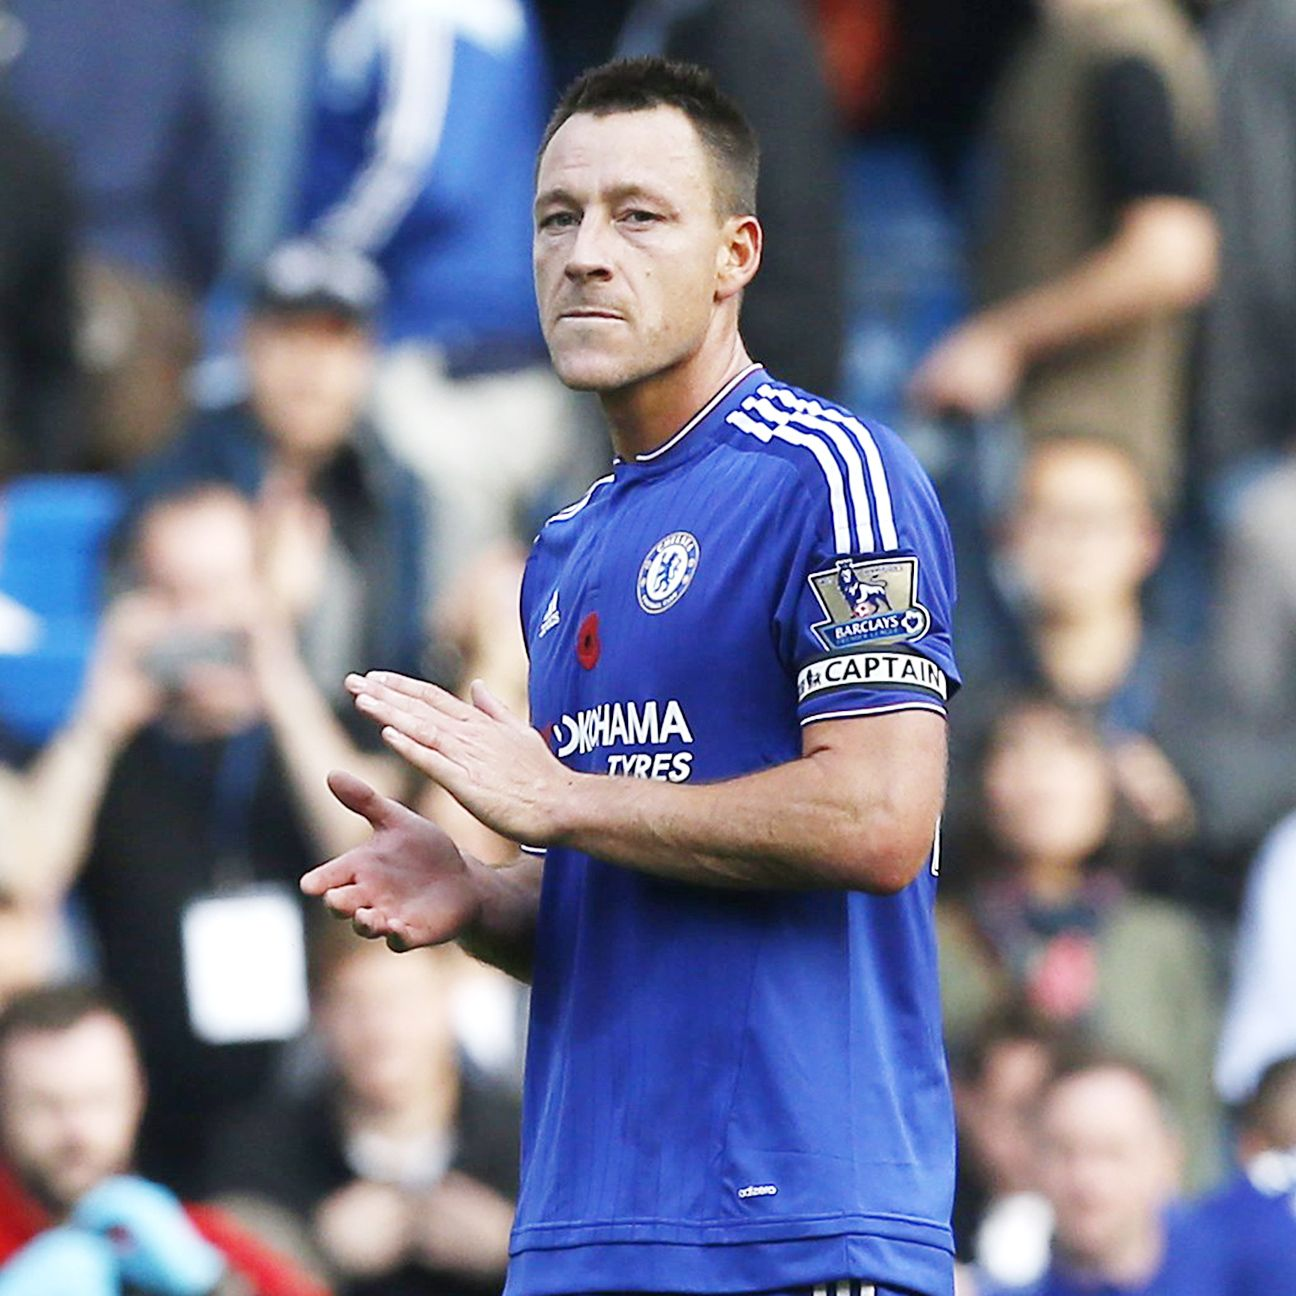 The 2015-16 Premier League campaign has been a nightmare thus far for John Terry and Chelsea.